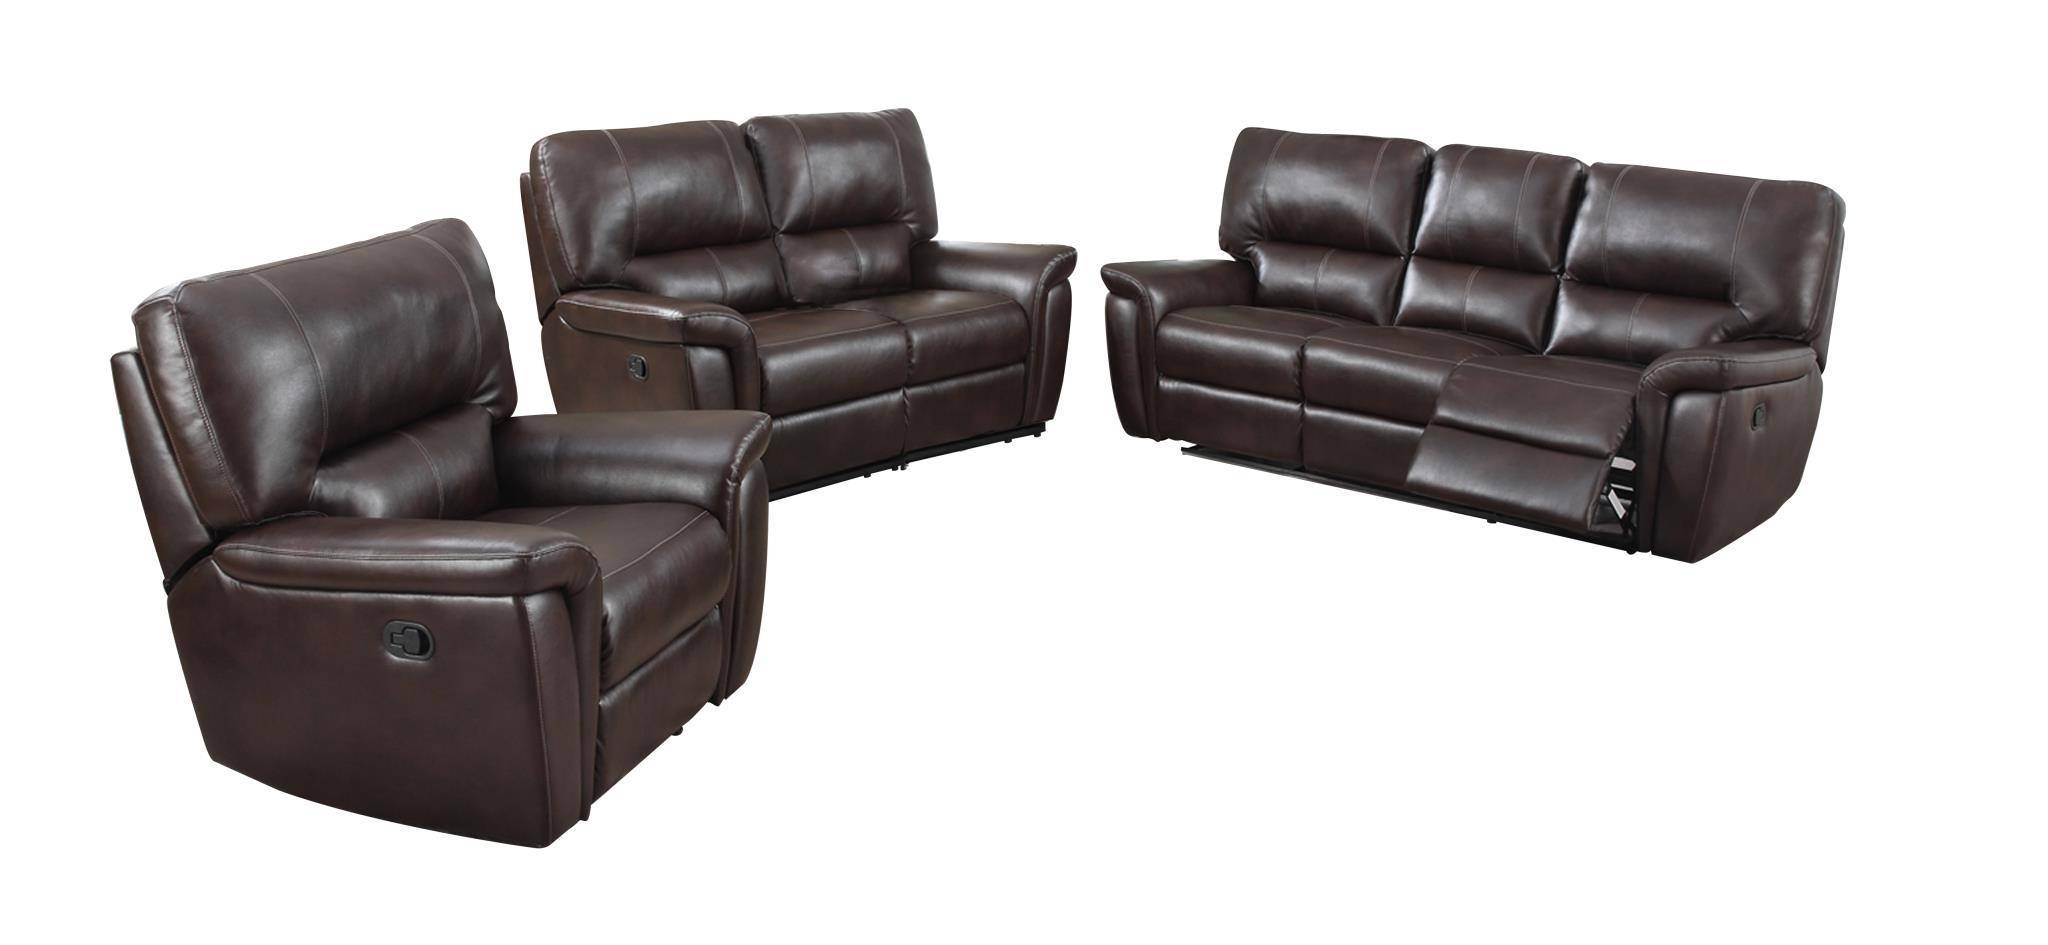 MYCO Furniture Galaxy Burgundy Leather Air Reclining Power Sofa Set 2Pcs  Modern